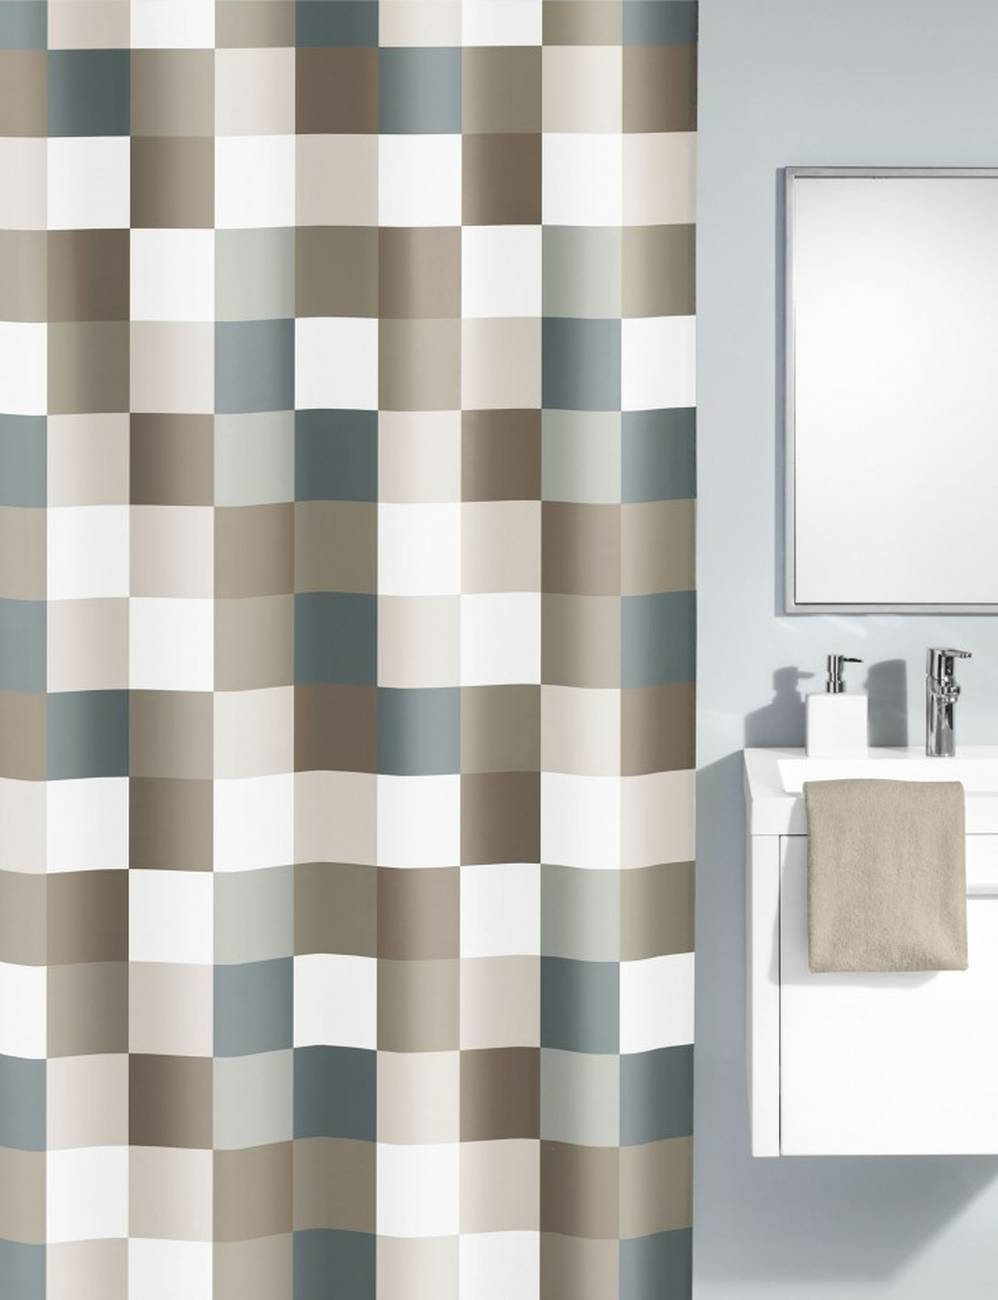 Duschvorhang Check 100 % Polyester Taupe 180x200 cm